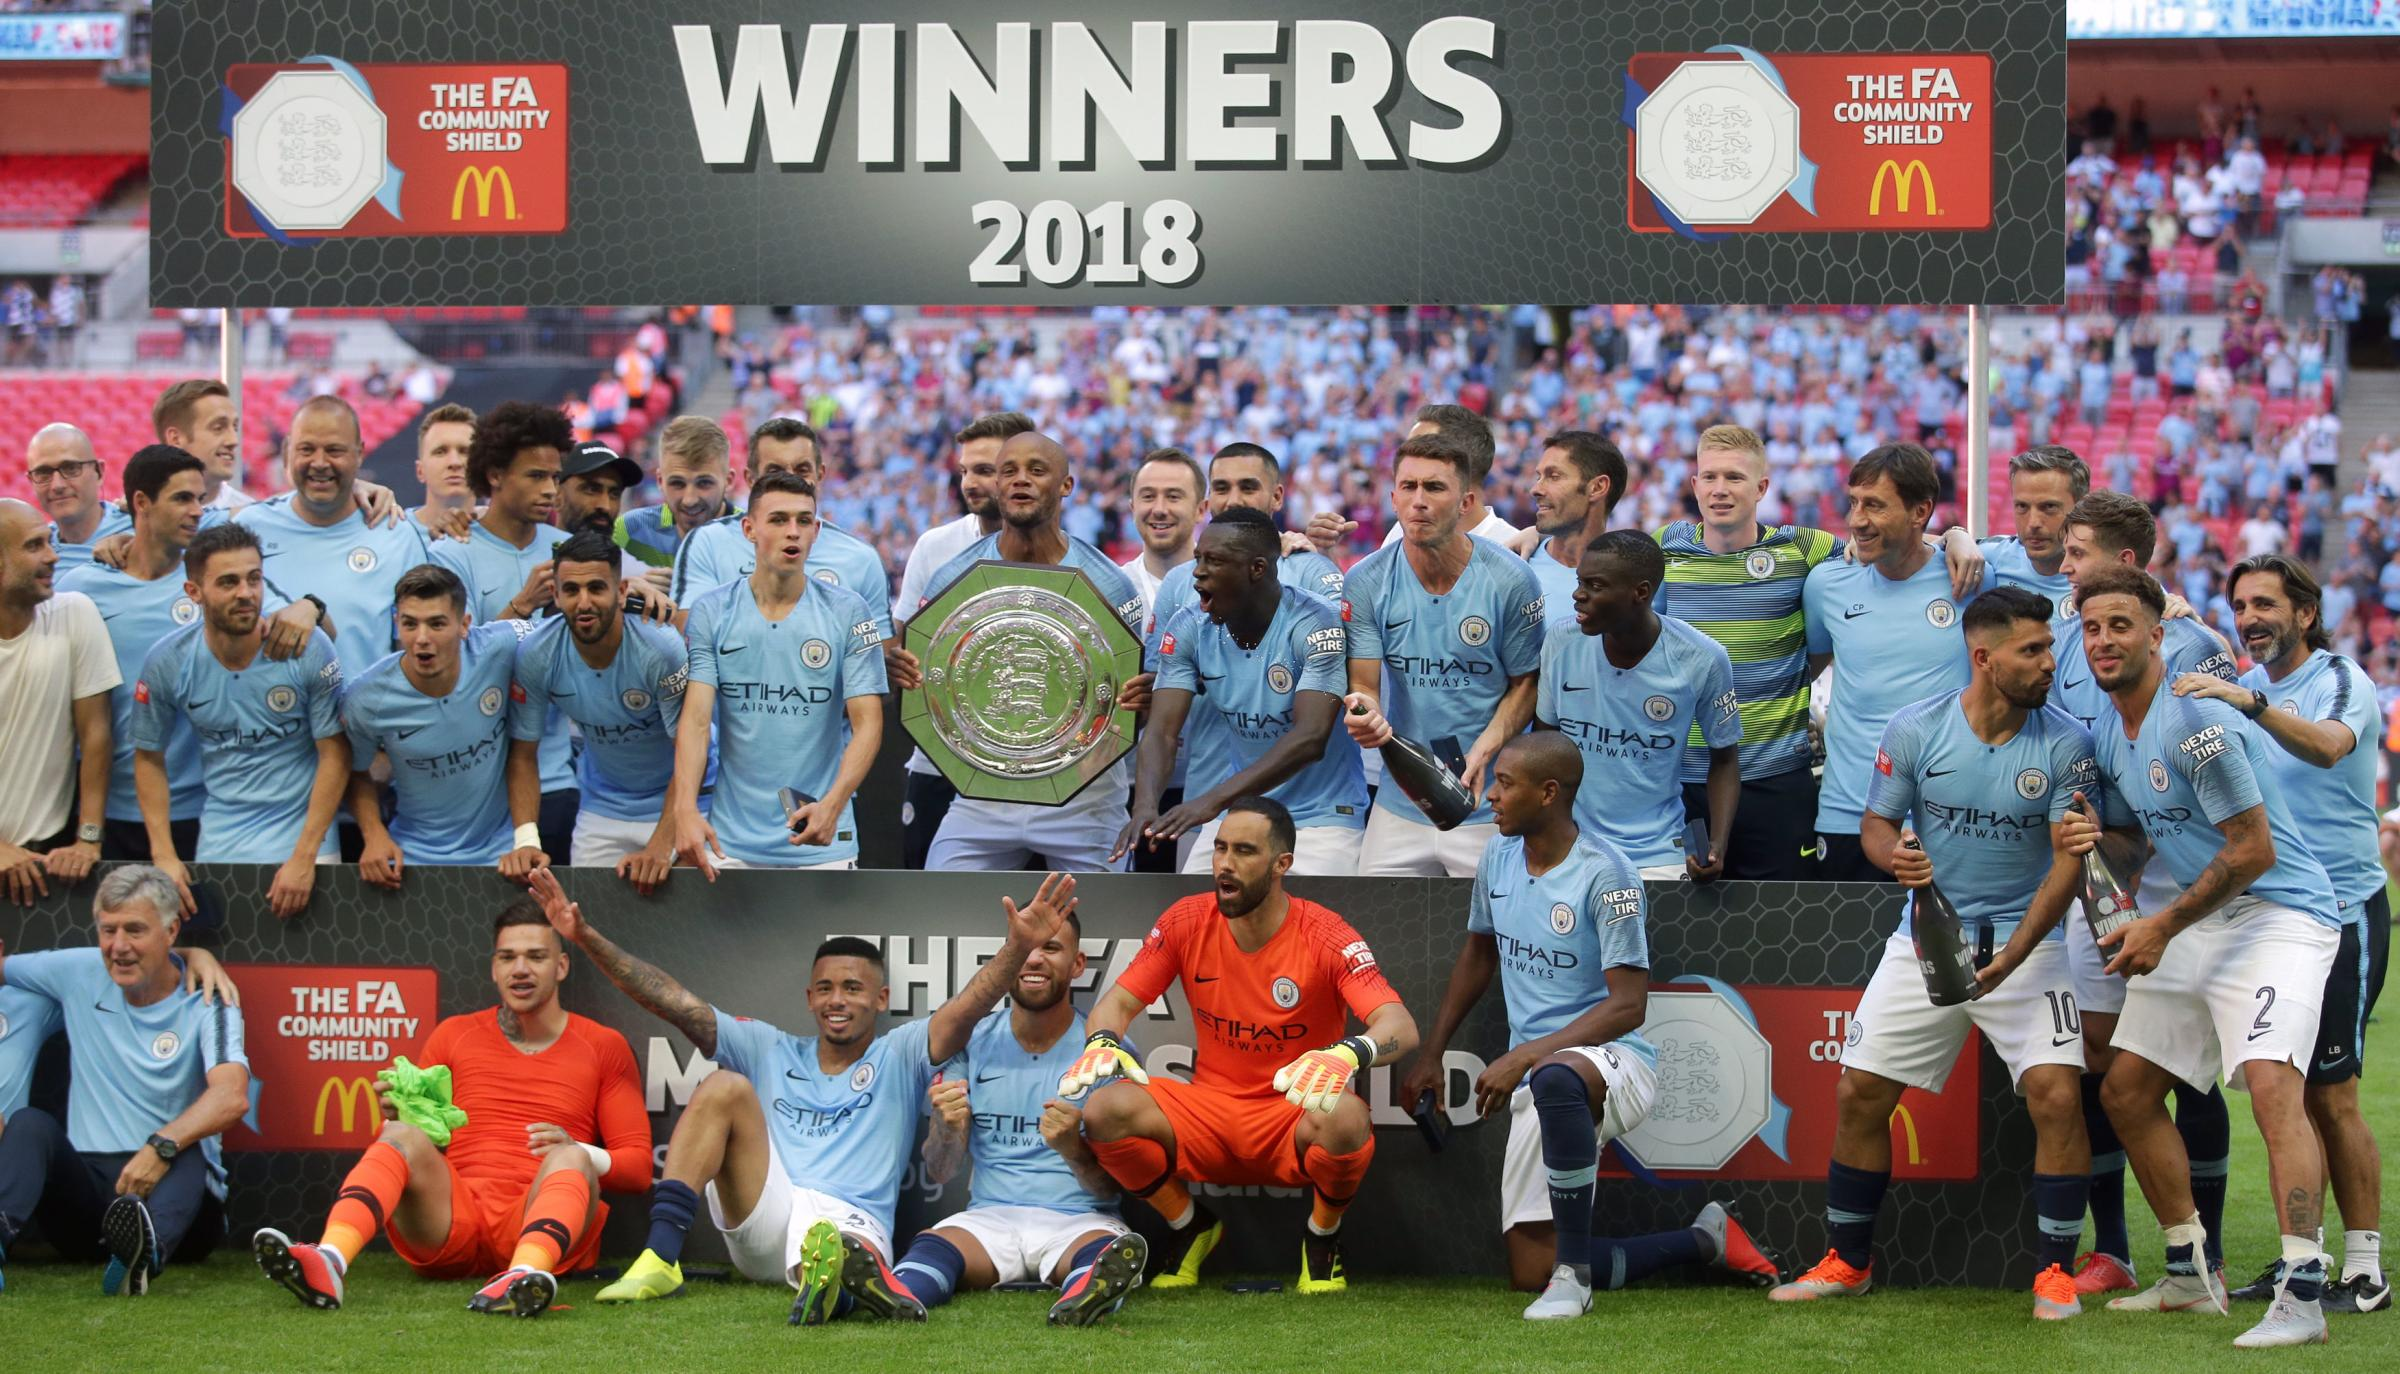 Manchester City players celebrate with the Community Shield after winning the Community Shield match at Wembley Stadium, London. PRESS ASSOCIATION Photo. Picture date: Sunday August 5, 2018. See PA story SOCCER Community Shield. Photo credit should read: